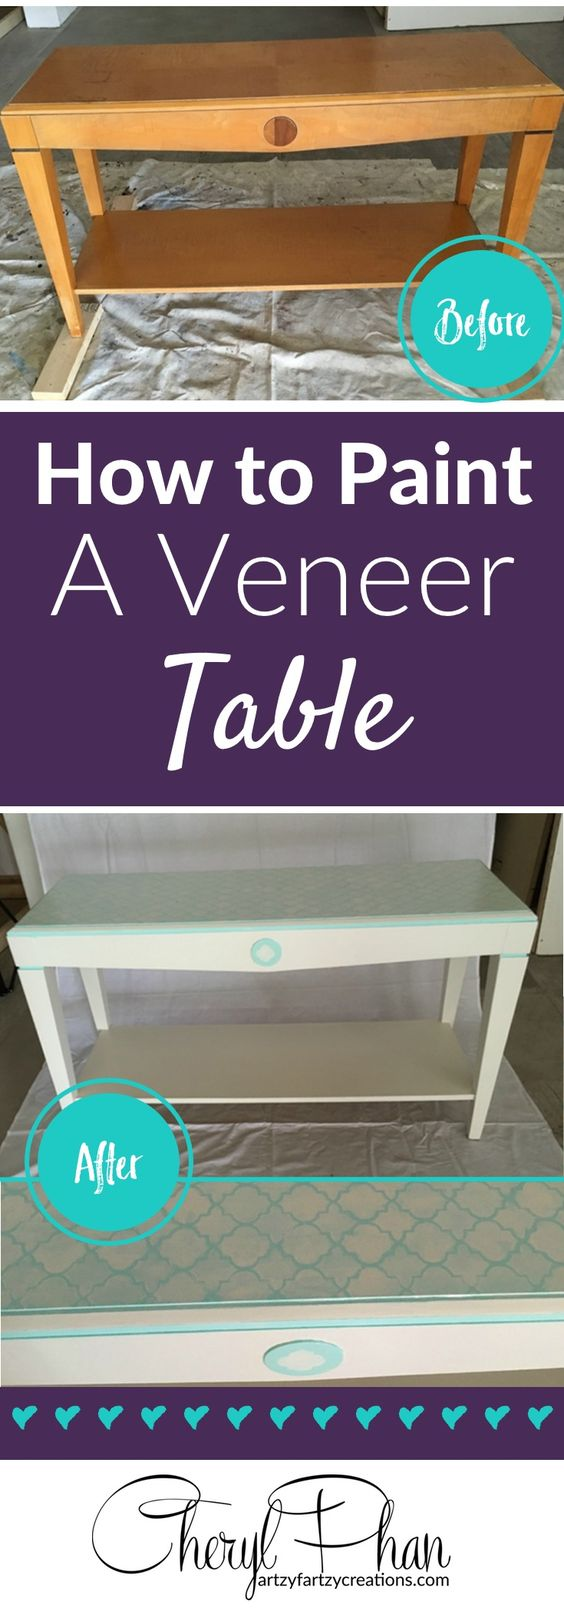 How to Paint Veneer | Painting a Veneer Table | Furniture Makeovers and Painting Tips by Cheryl Phan